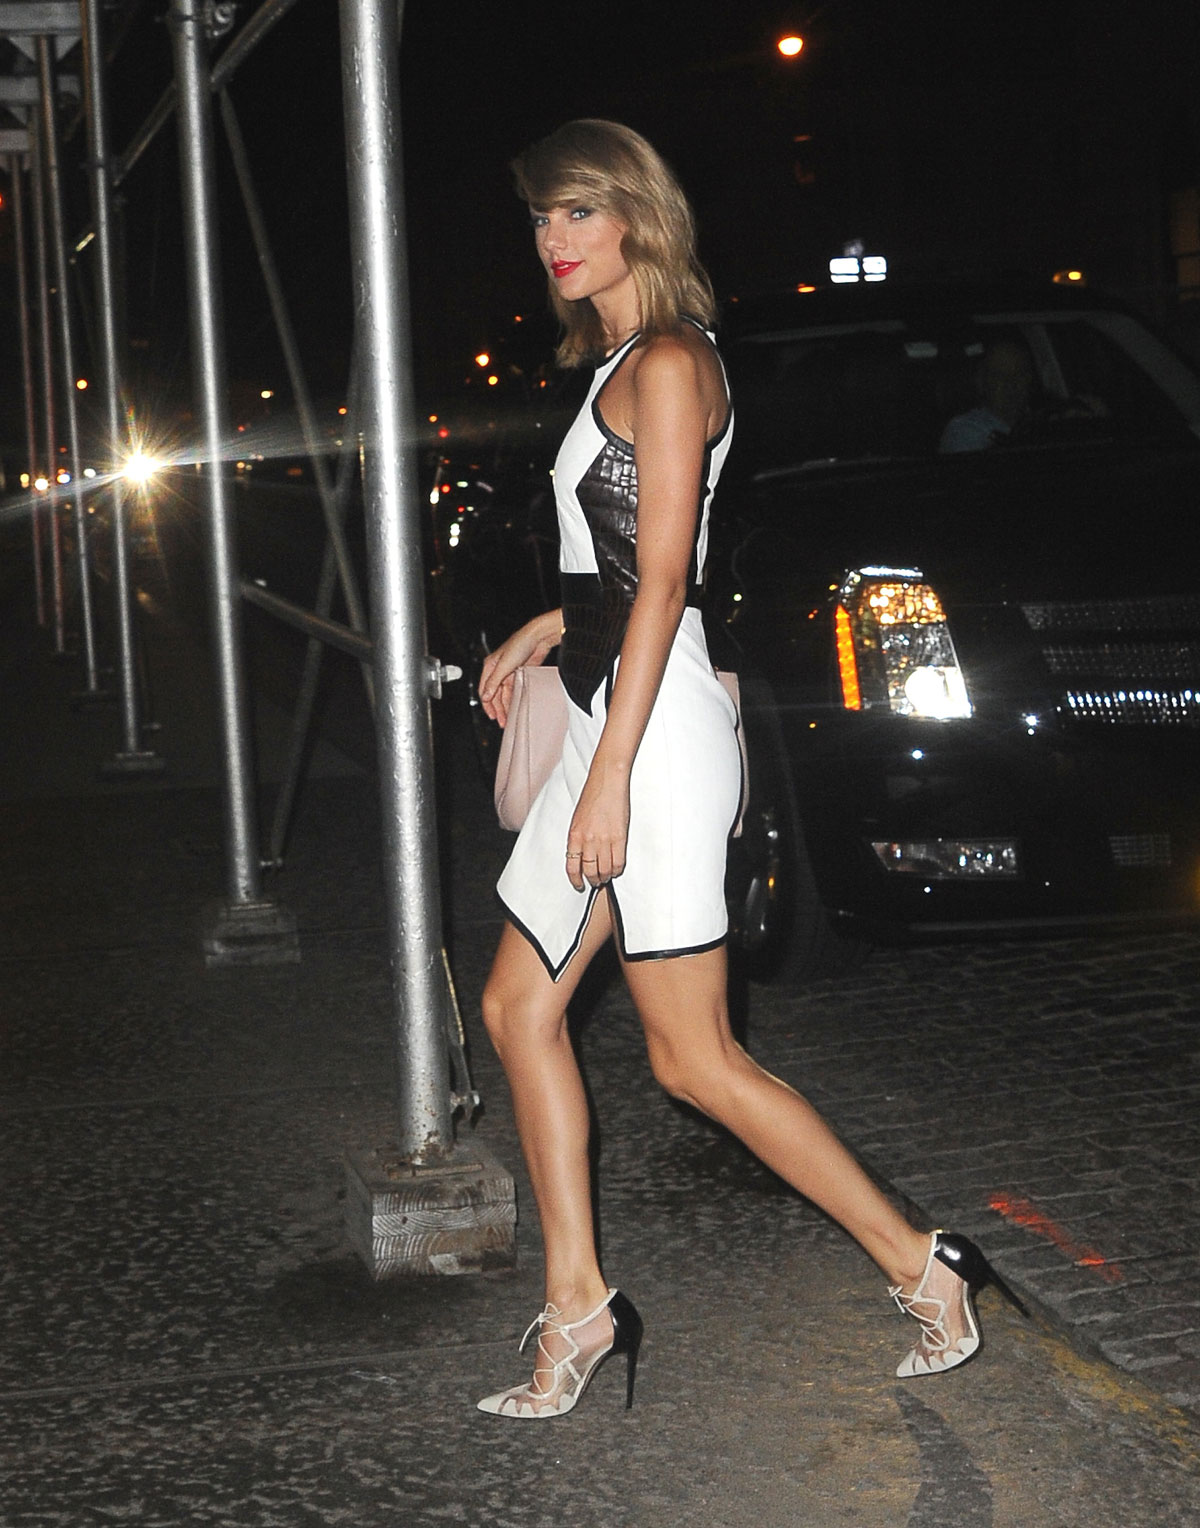 Taylor Swift arriving back at her hotel in NYC